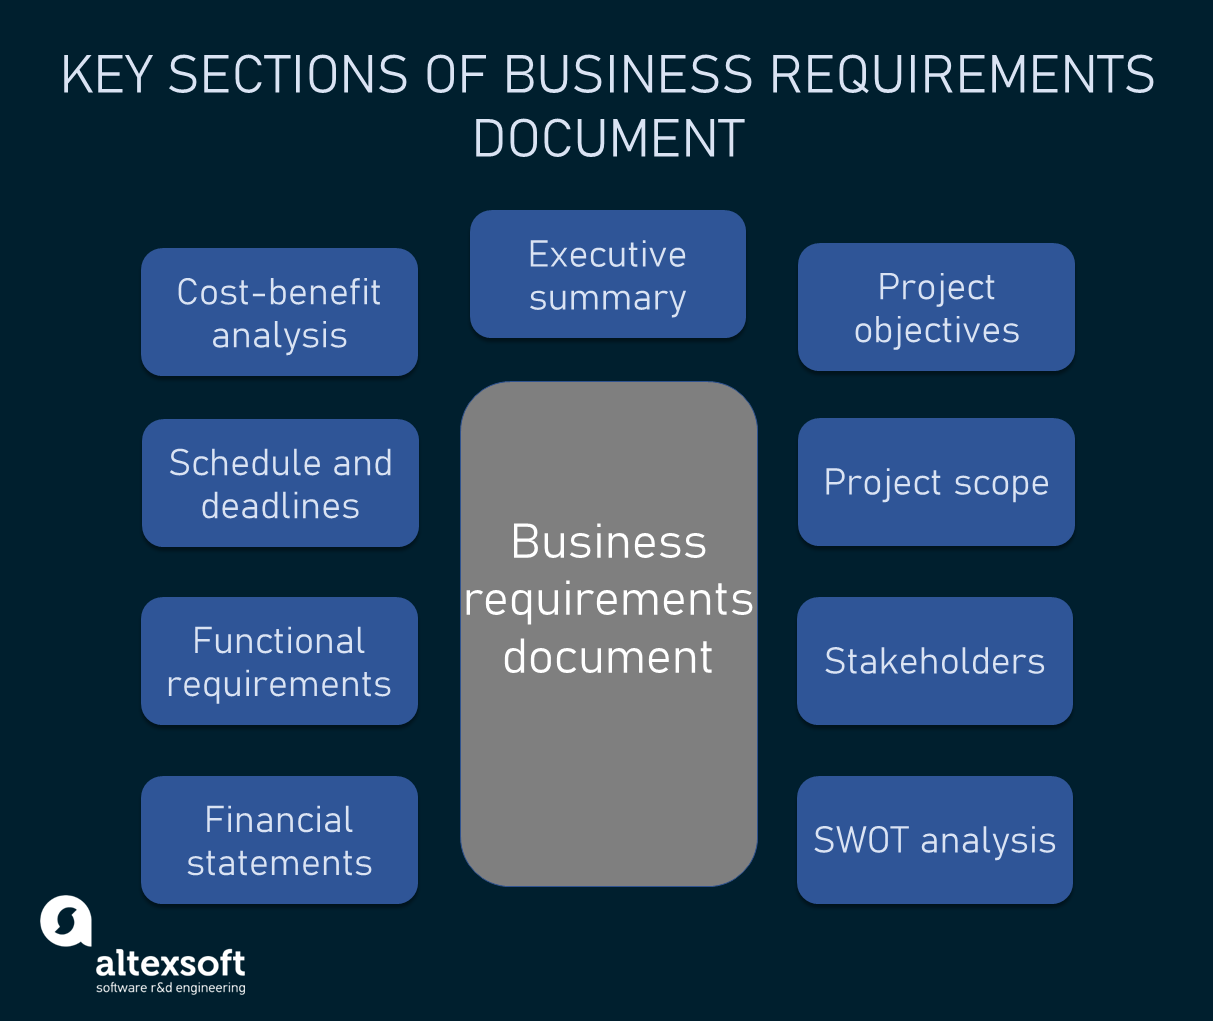 Key sections of a business requirements document